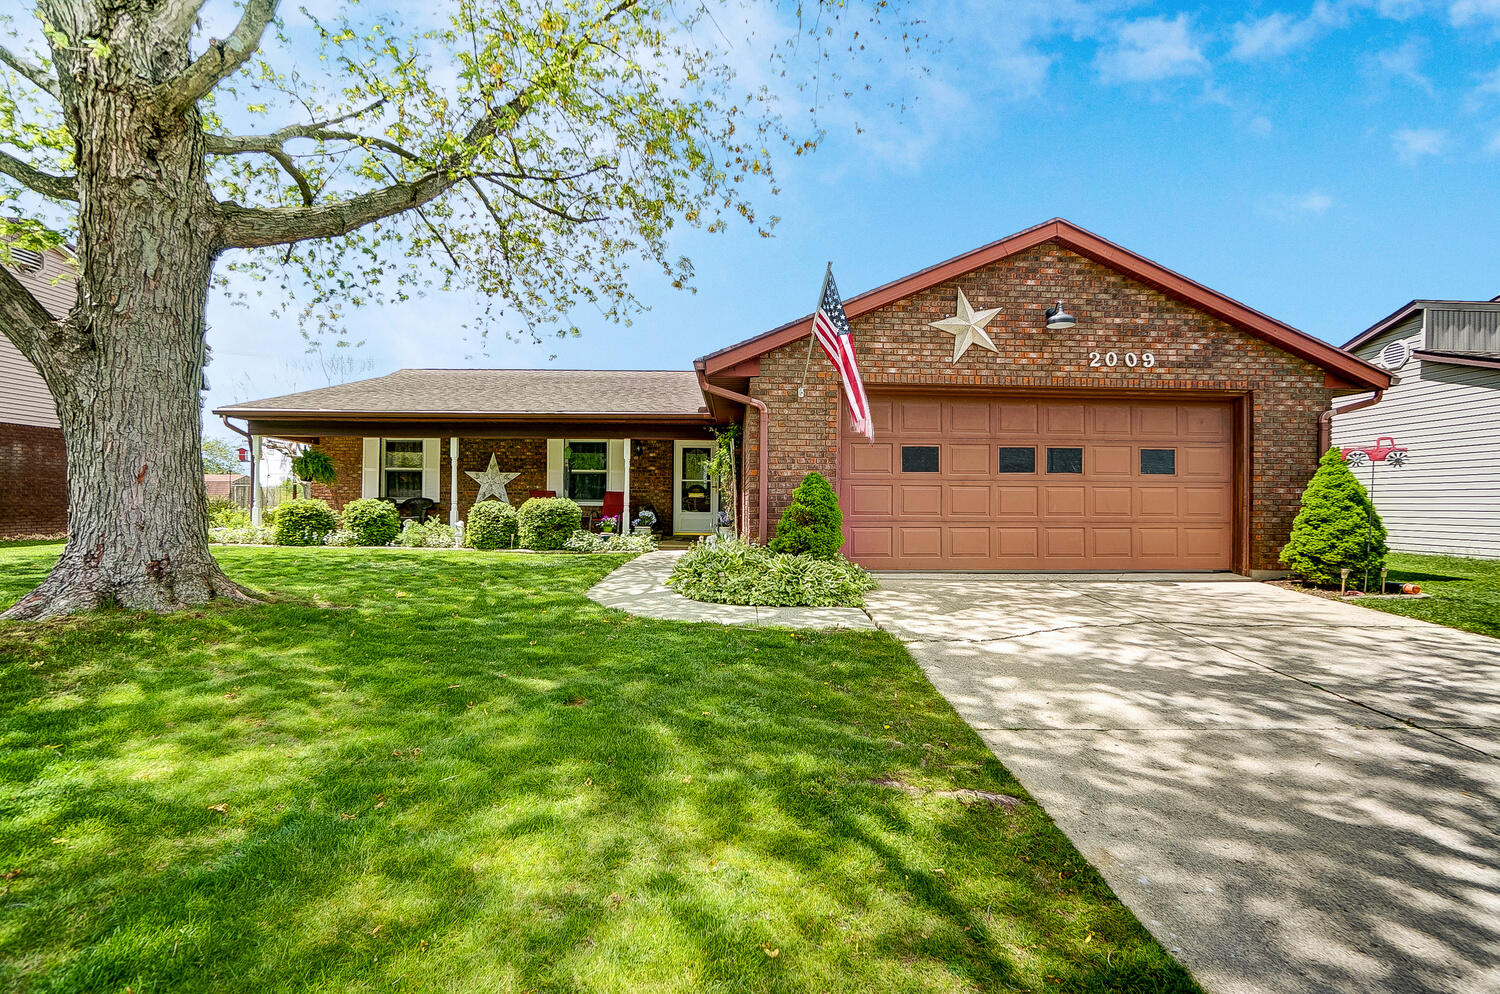 2009 Cheshire Drive Property Photo - Saint Marys, OH real estate listing